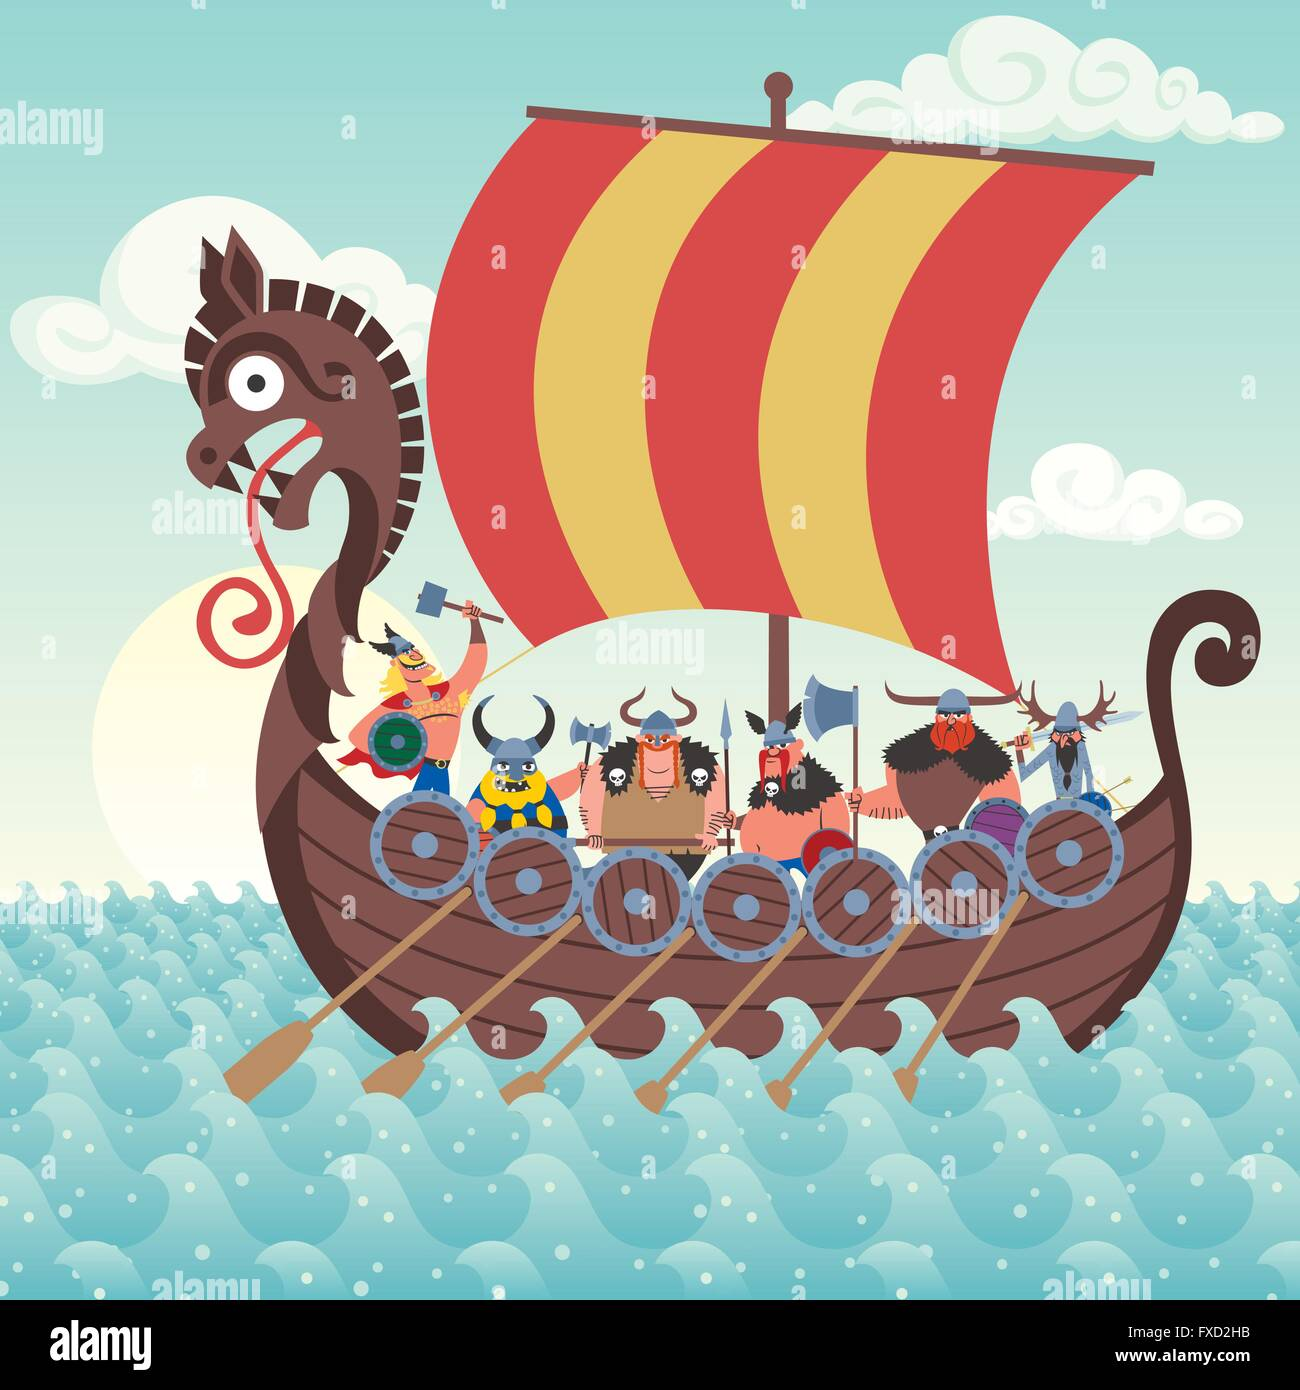 Image result for vikings cartoon